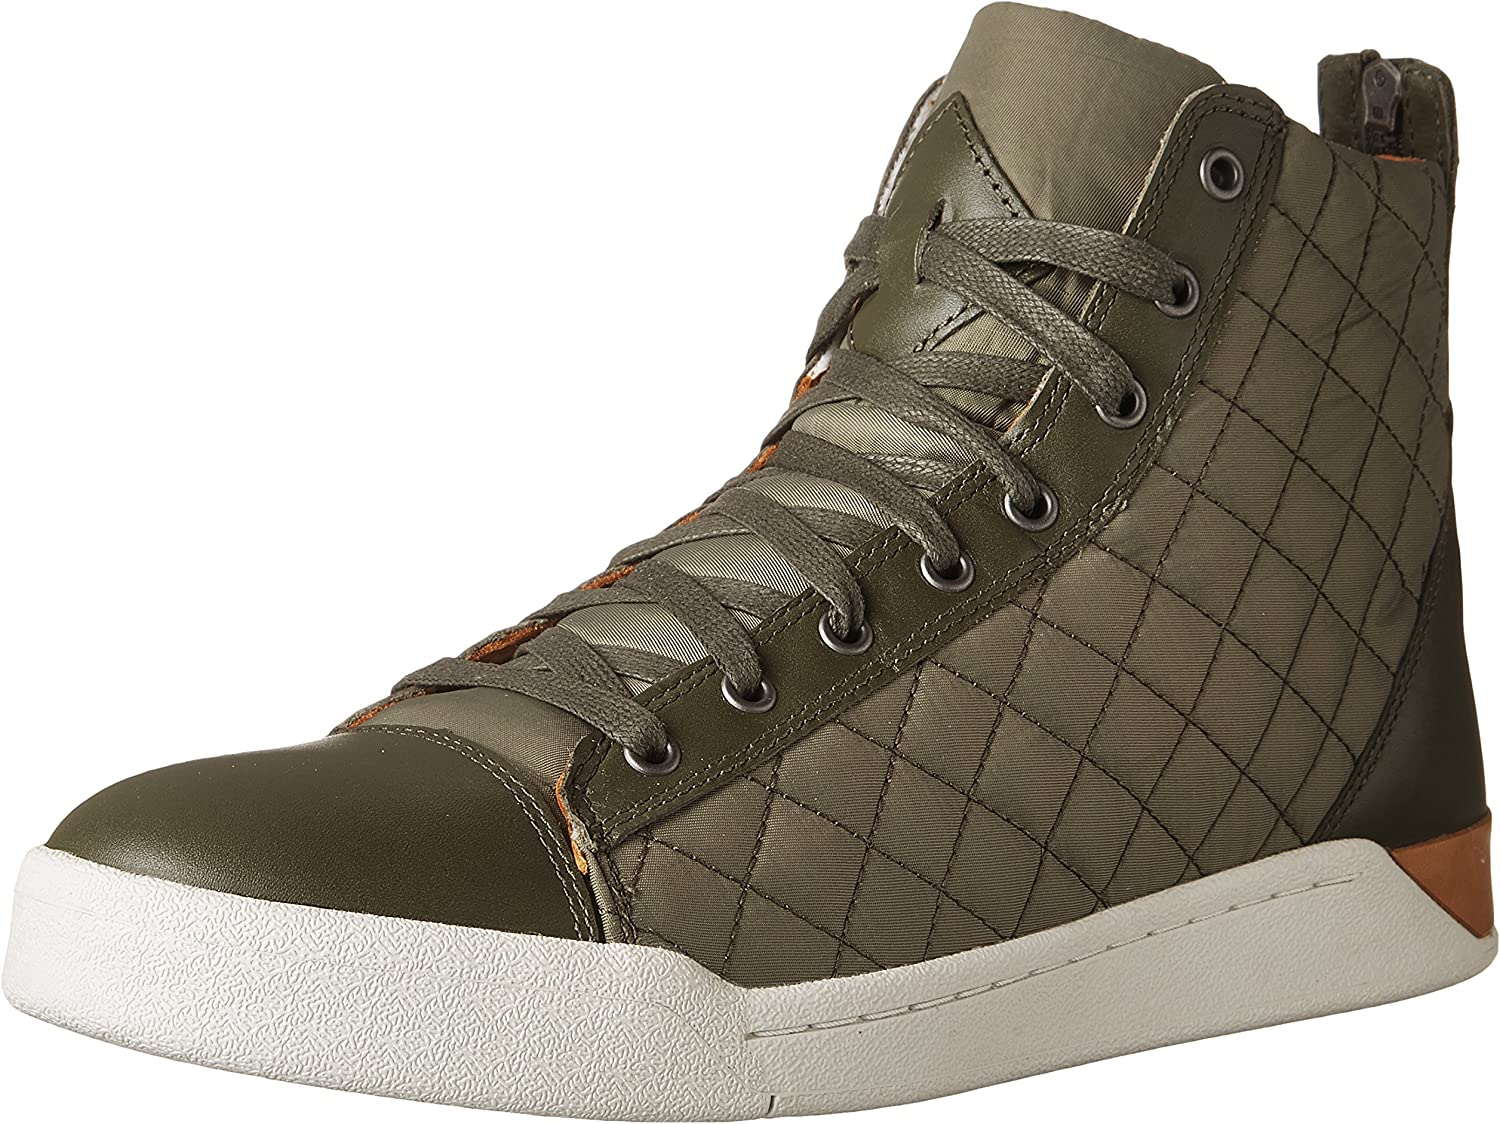 Diesel Men's Diamond Fashion Sneakers